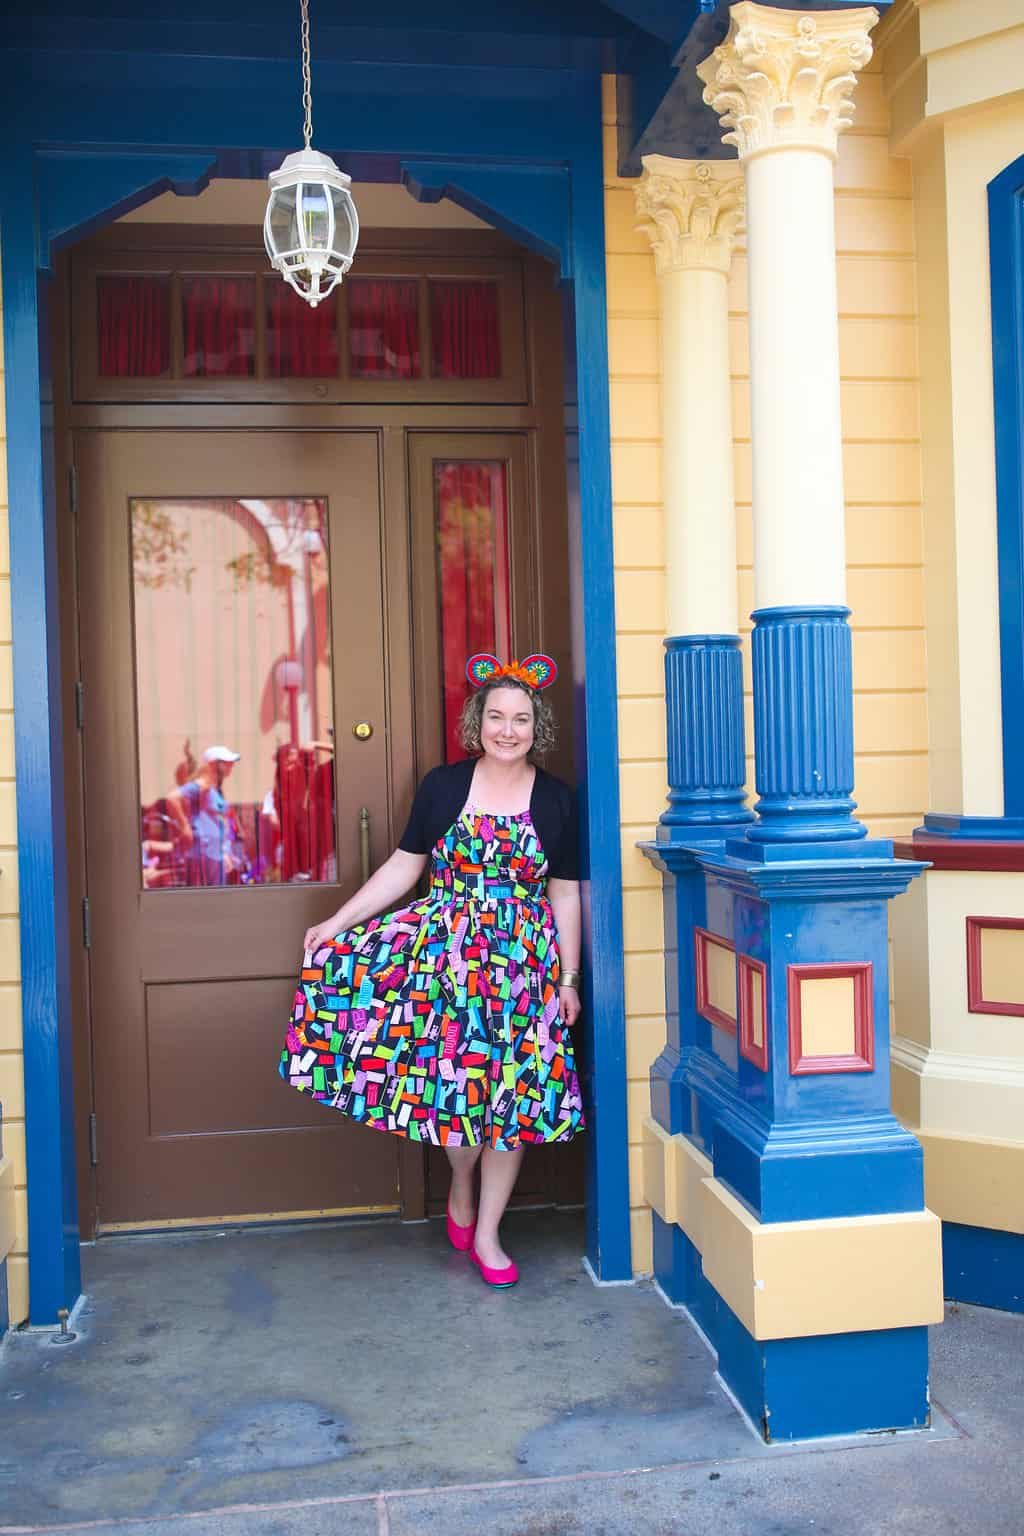 You know what to wear to Pixar Fest when you're hanging out with your BFFs, but what will you do? There are so many new and exciting Pixar Fest additions at both Disneyland Resort and Disney California Adventure Park. Don't miss these must-do experiences. #pixarfest #disneyland #familytravel #disneyvacation #disneymom